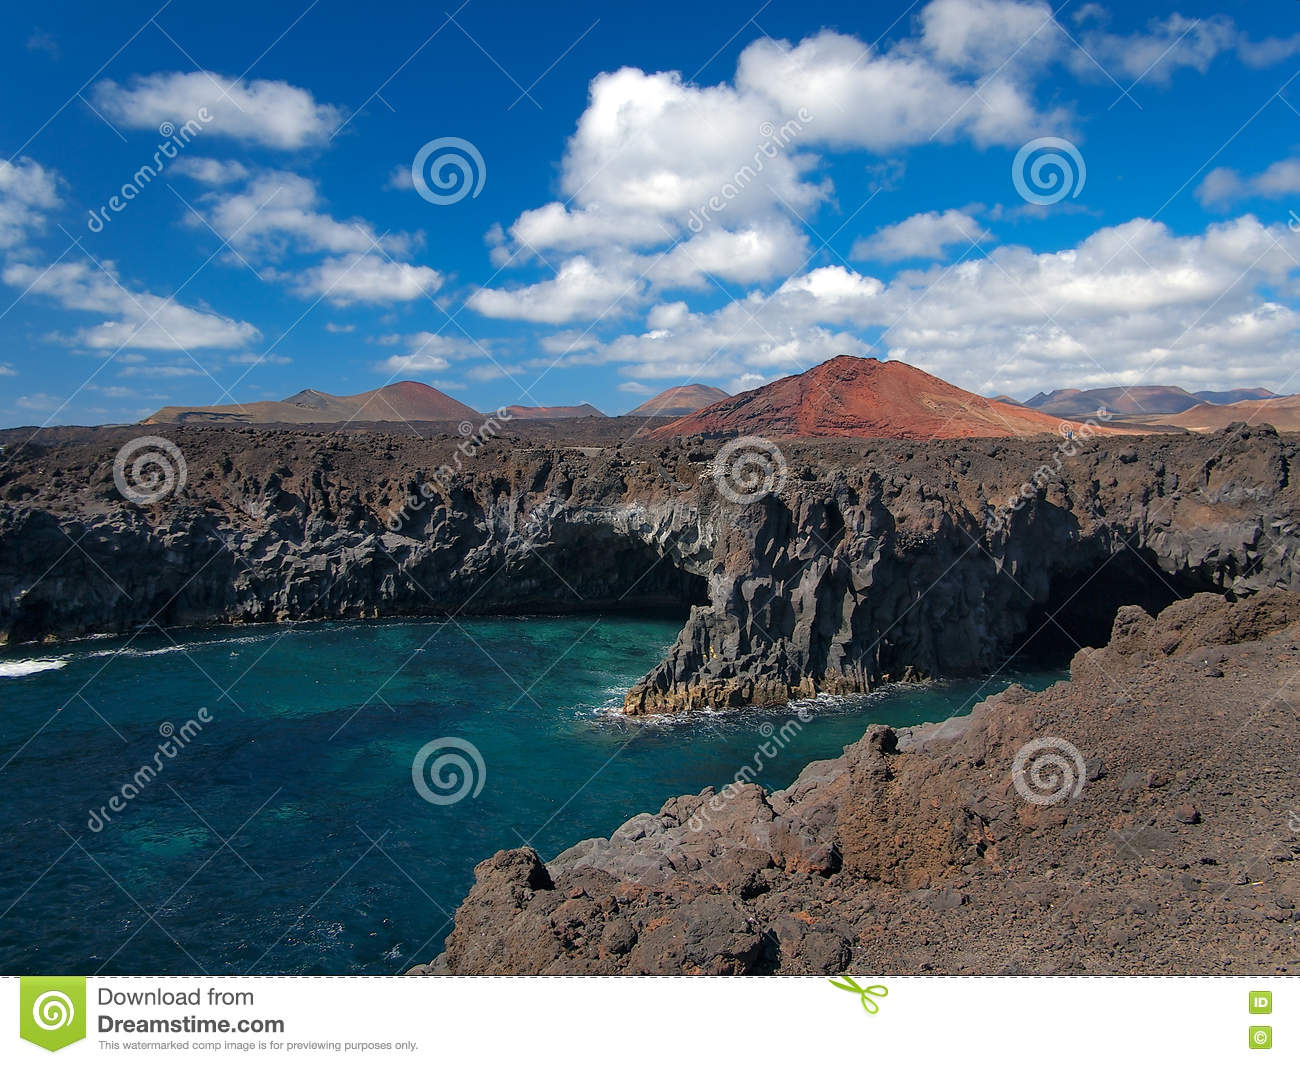 Ocean waves breaking on the rocky coast of hardened lava with caverns and cavities. Deep blue sky with white clouds and mountains